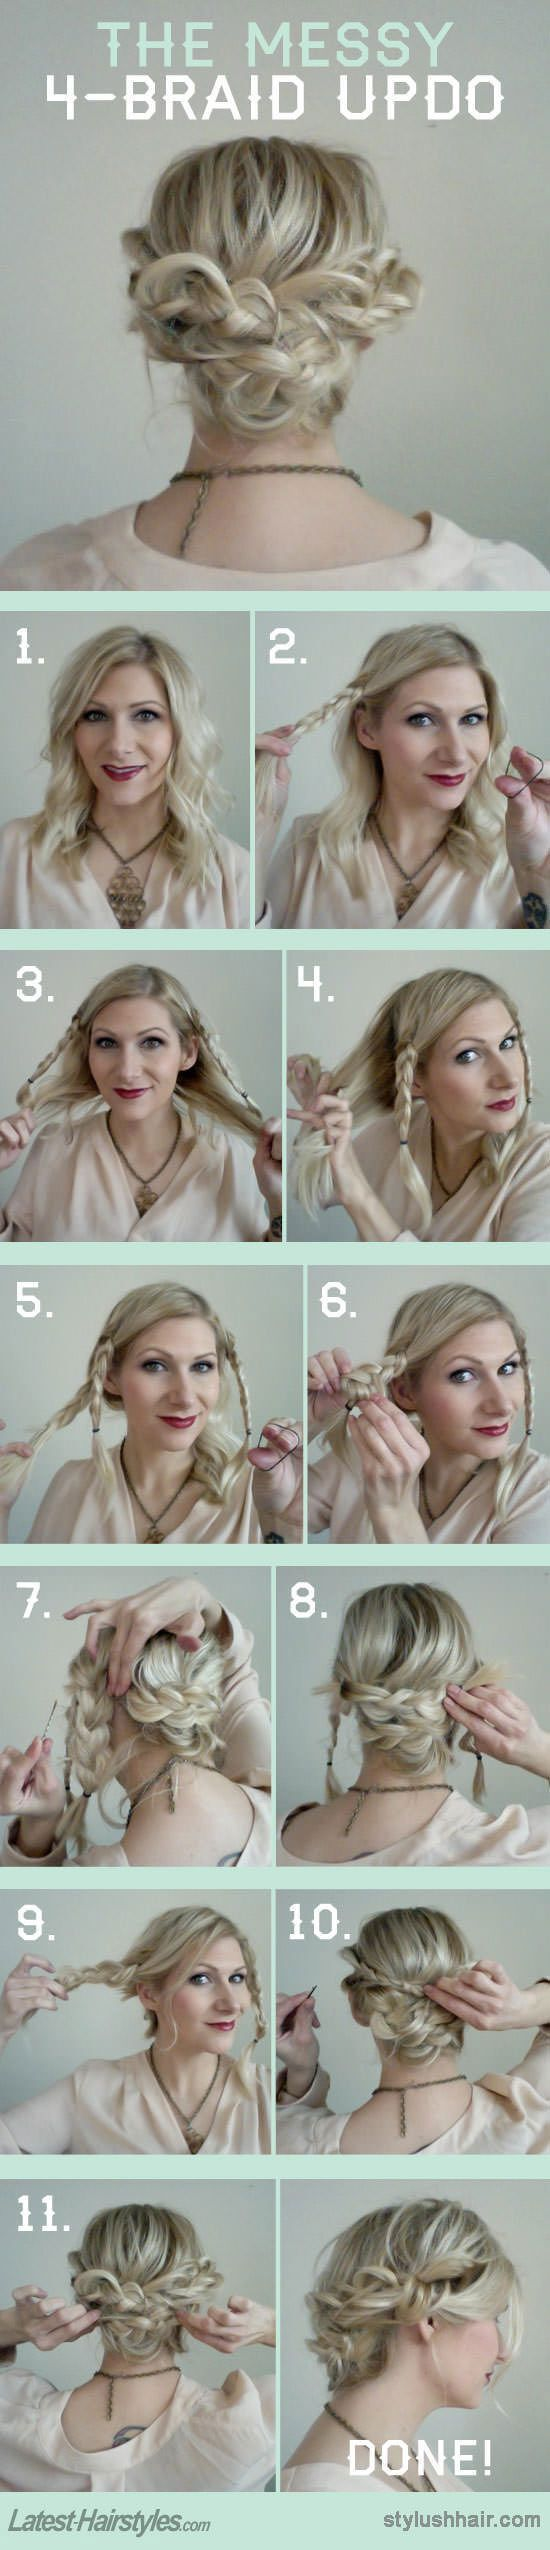 Cute and Easy Updo Hairstyle Tutorial - Messy Braid Updos